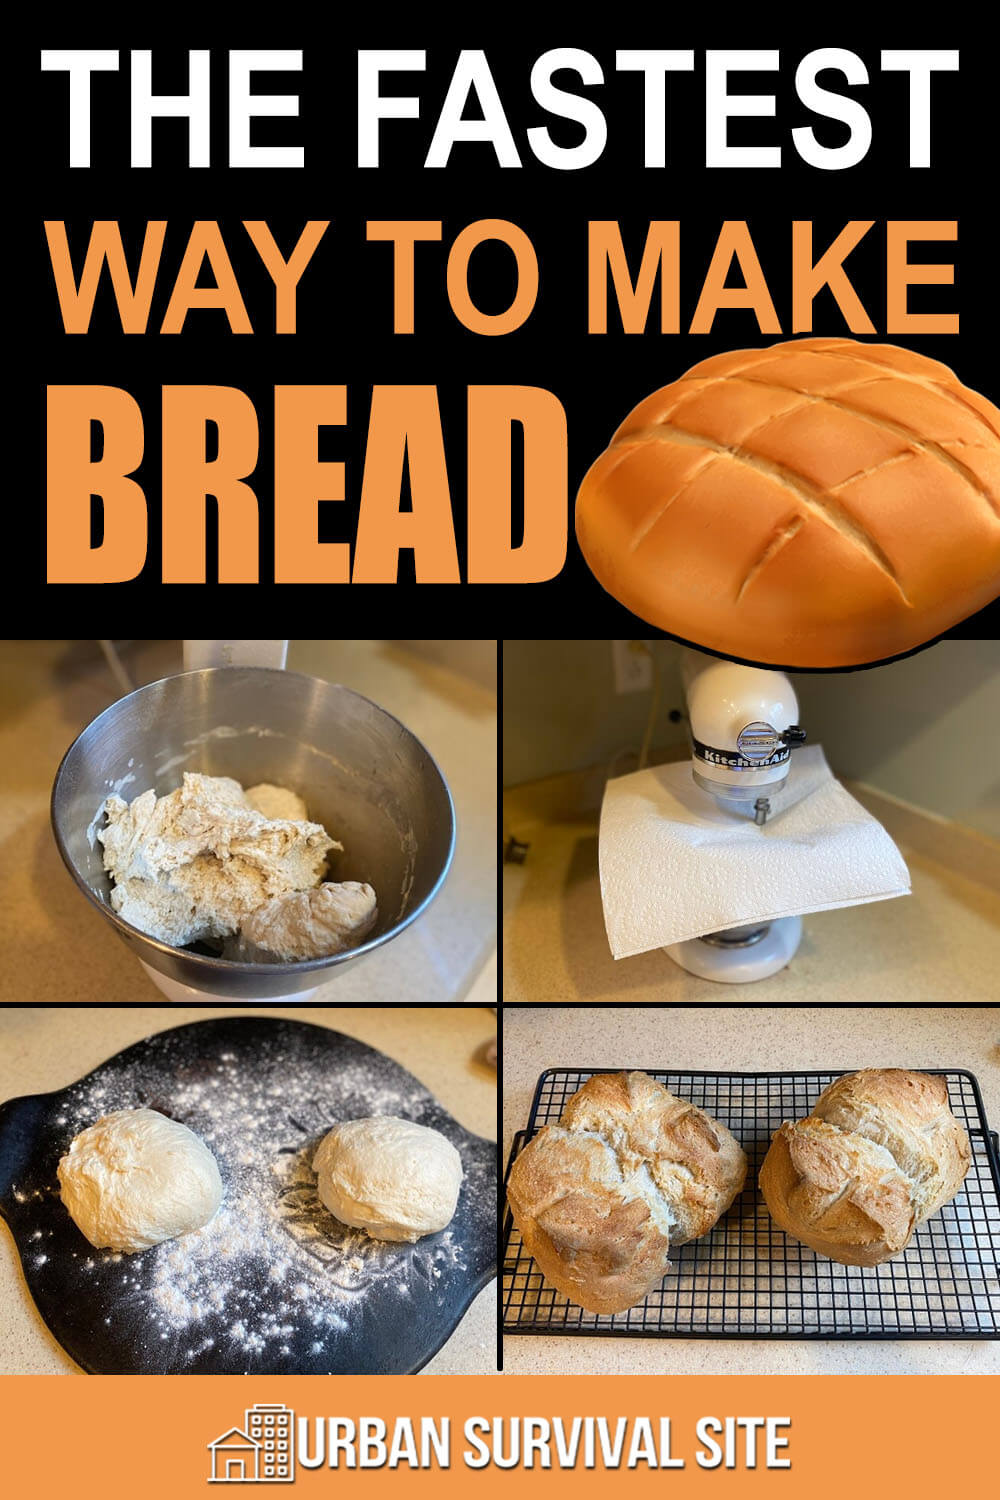 The Fastest Way To Make Bread